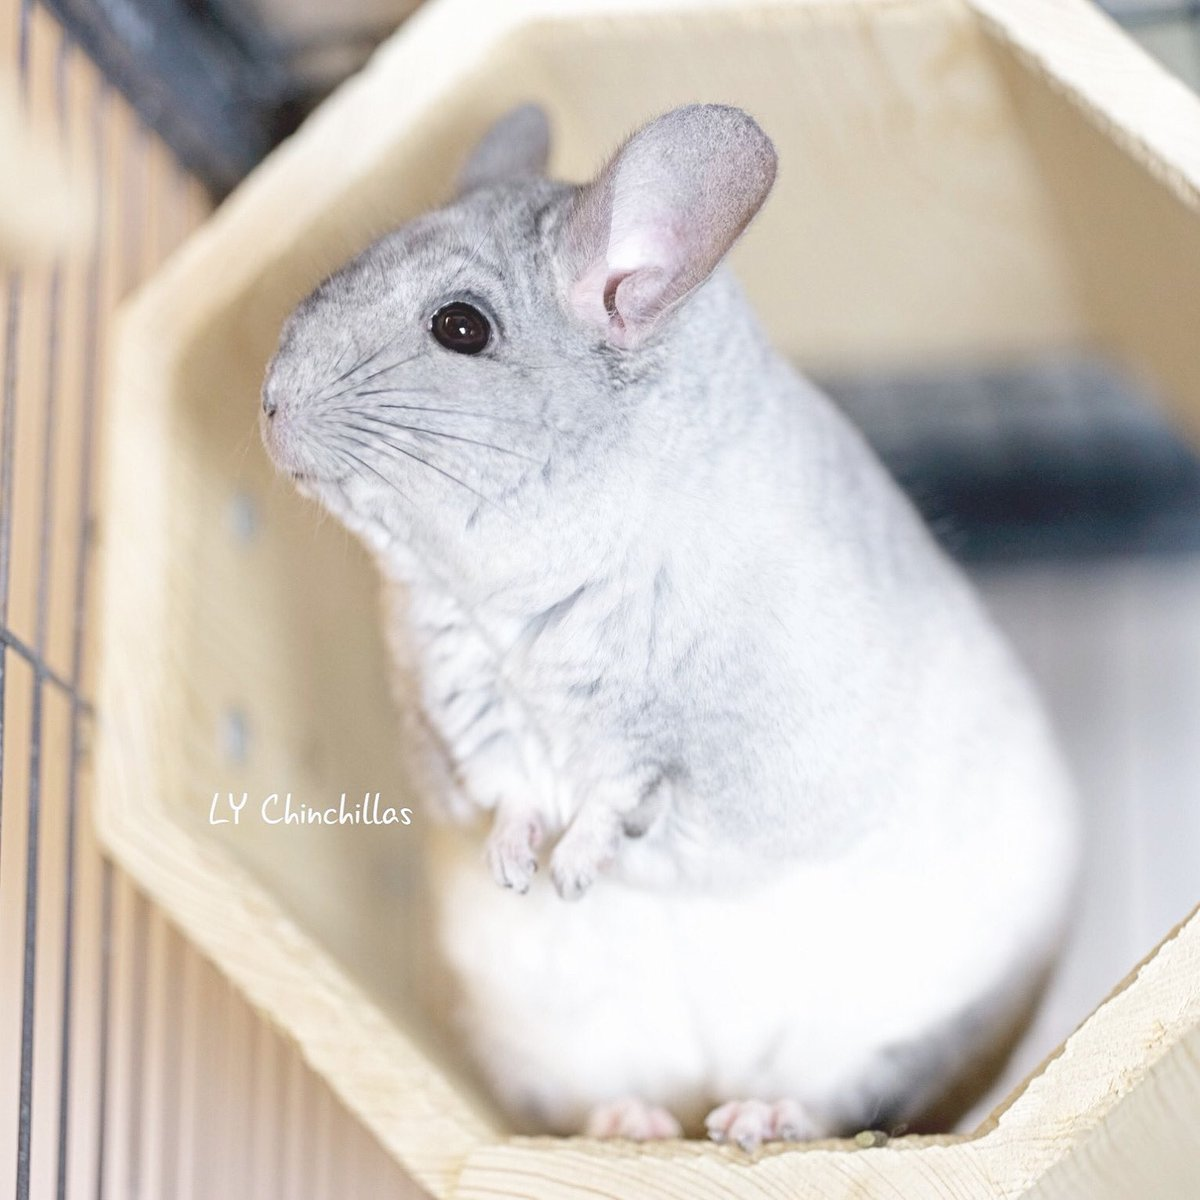 Smiling into summer! Lulu is ready for an air-conditioned afternoon.   Visit us at http://LYChinchillas.com  today!  #chinchilla #cutenessOVERLOAD #cuteanimals #cutepetclub #cuteanimaltweetoff #petsofinstagram #チンチラ #LYChinchillaspic.twitter.com/bc76PilC62